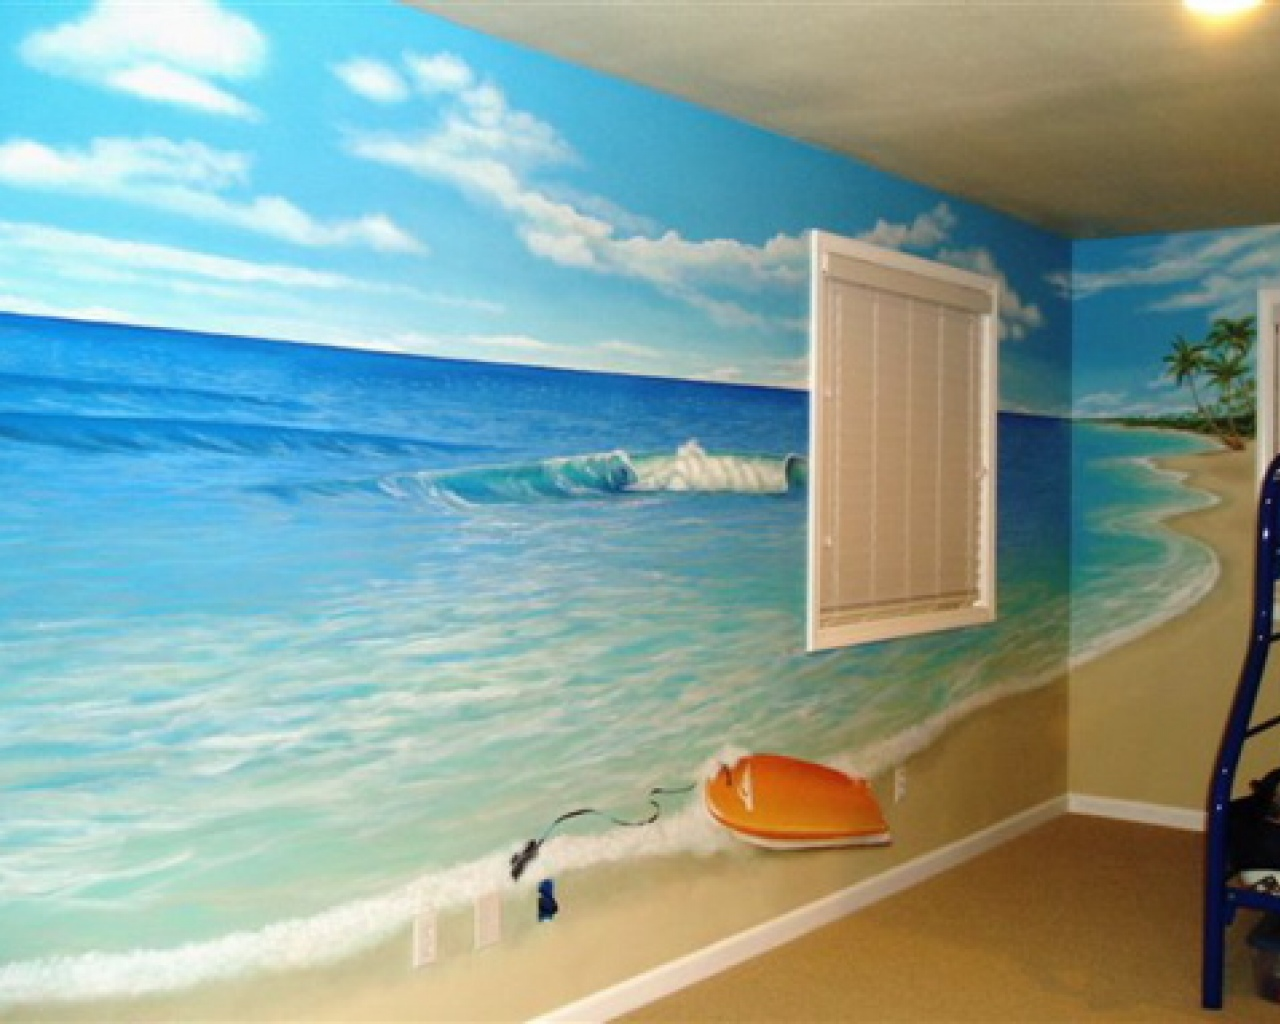 beach-themed-wall-murals-kids-room-decor-kids-bedroom-interior-bathroom-ideas-beach-beach-bathroom.com-kids-kids-bed-kids-bedroom-kids-room-kids-room-decor-mural-murals-murals-kids-room-room-interior